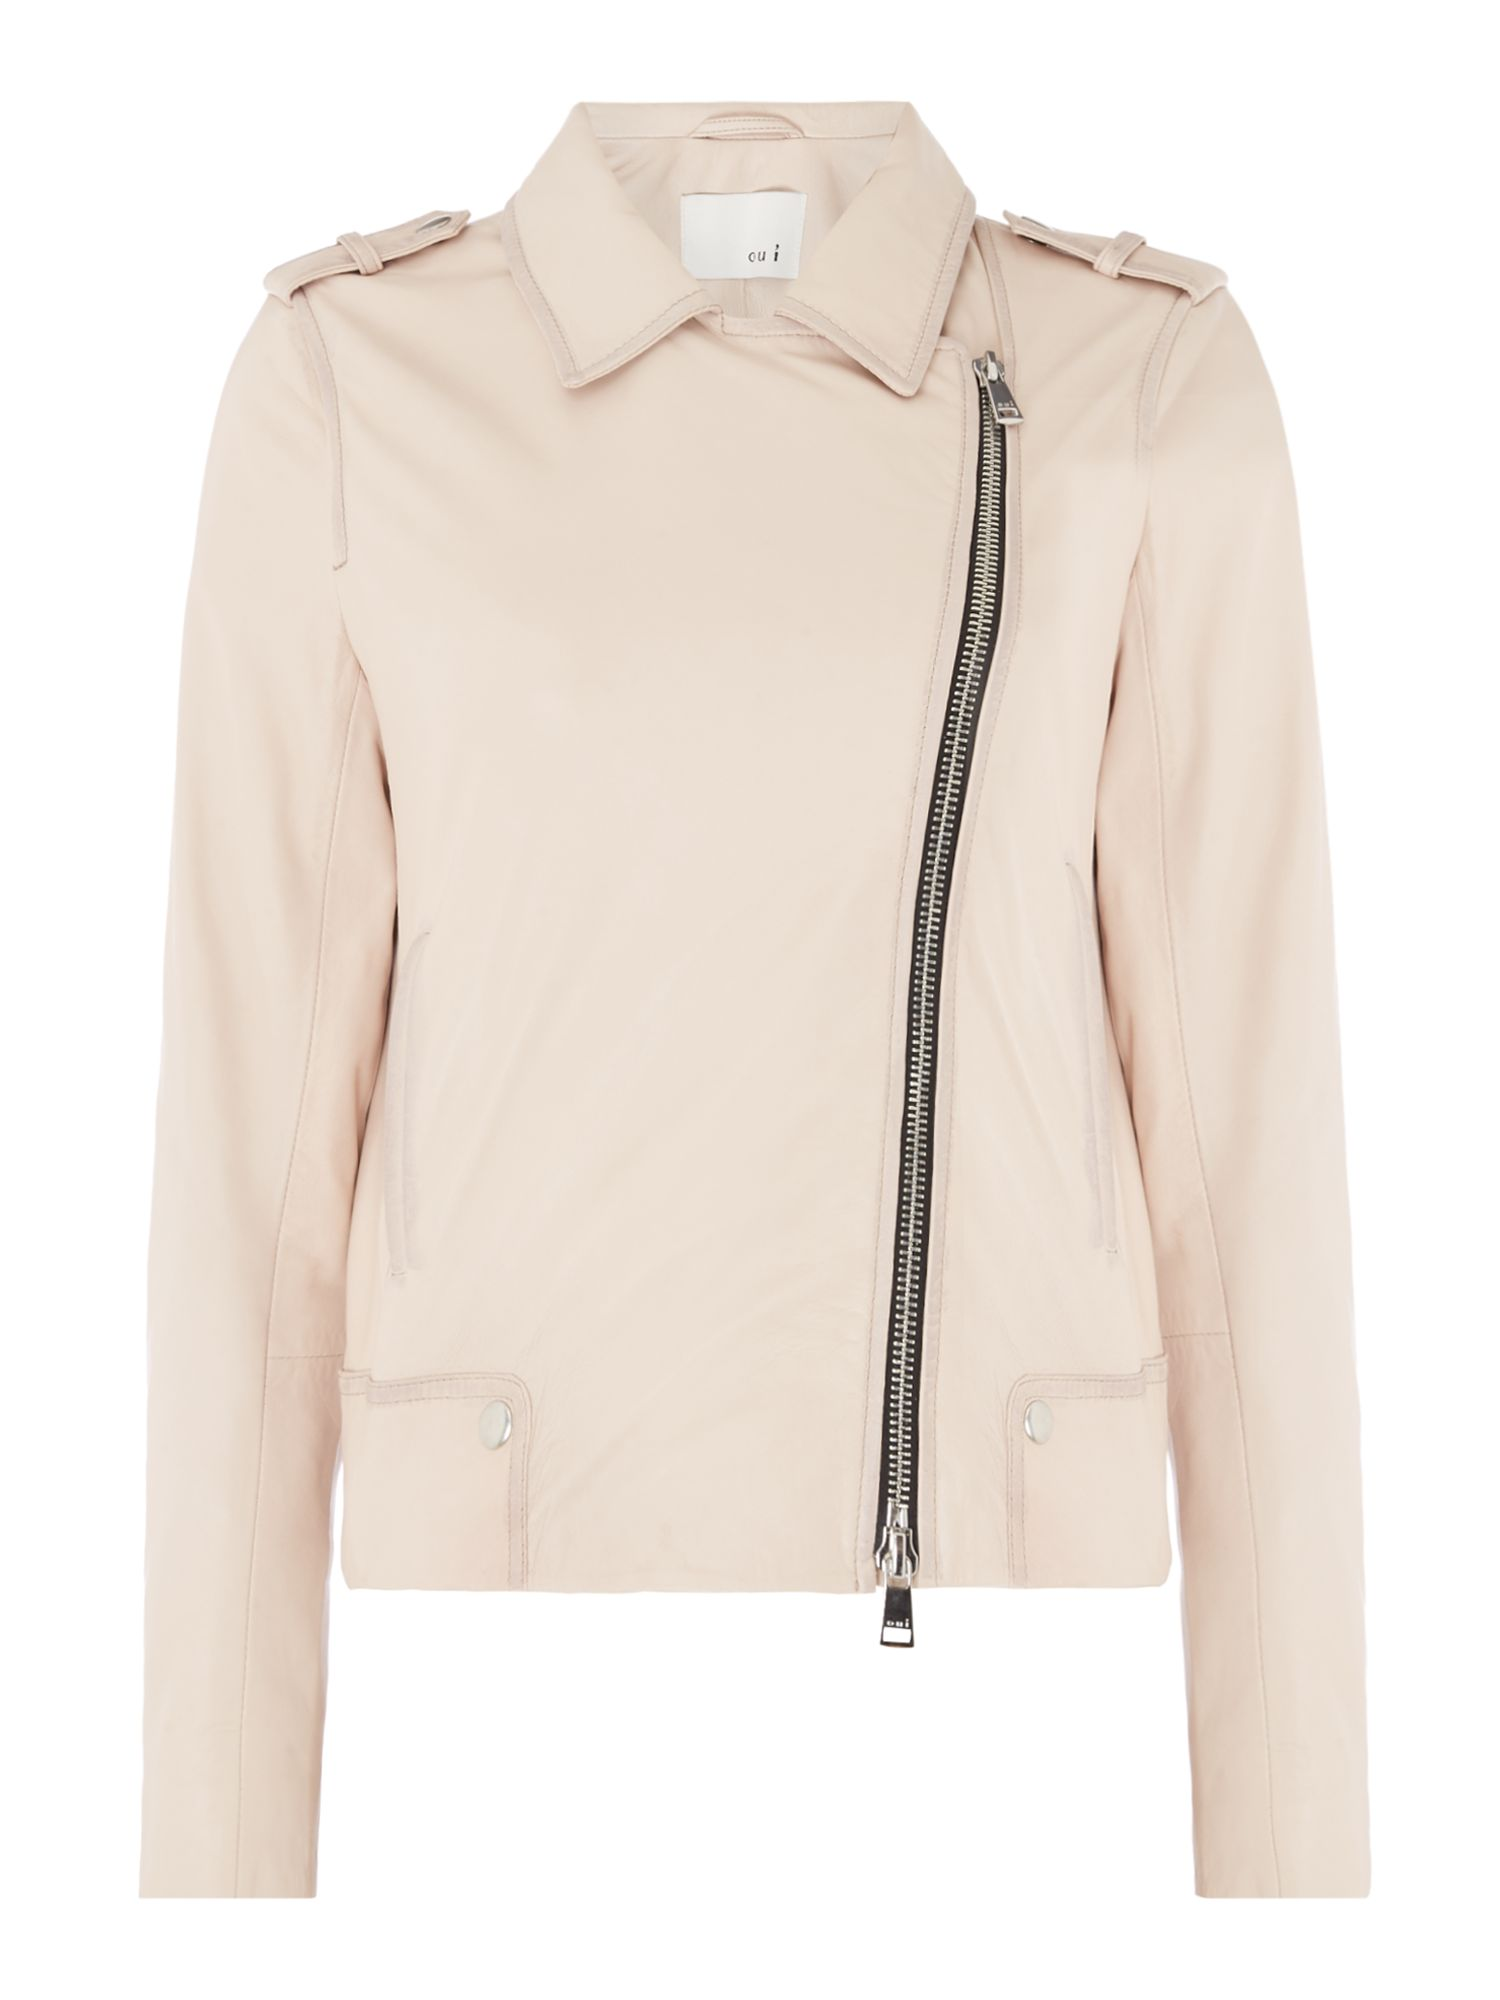 Oui Exclusive leather jacket, Rose